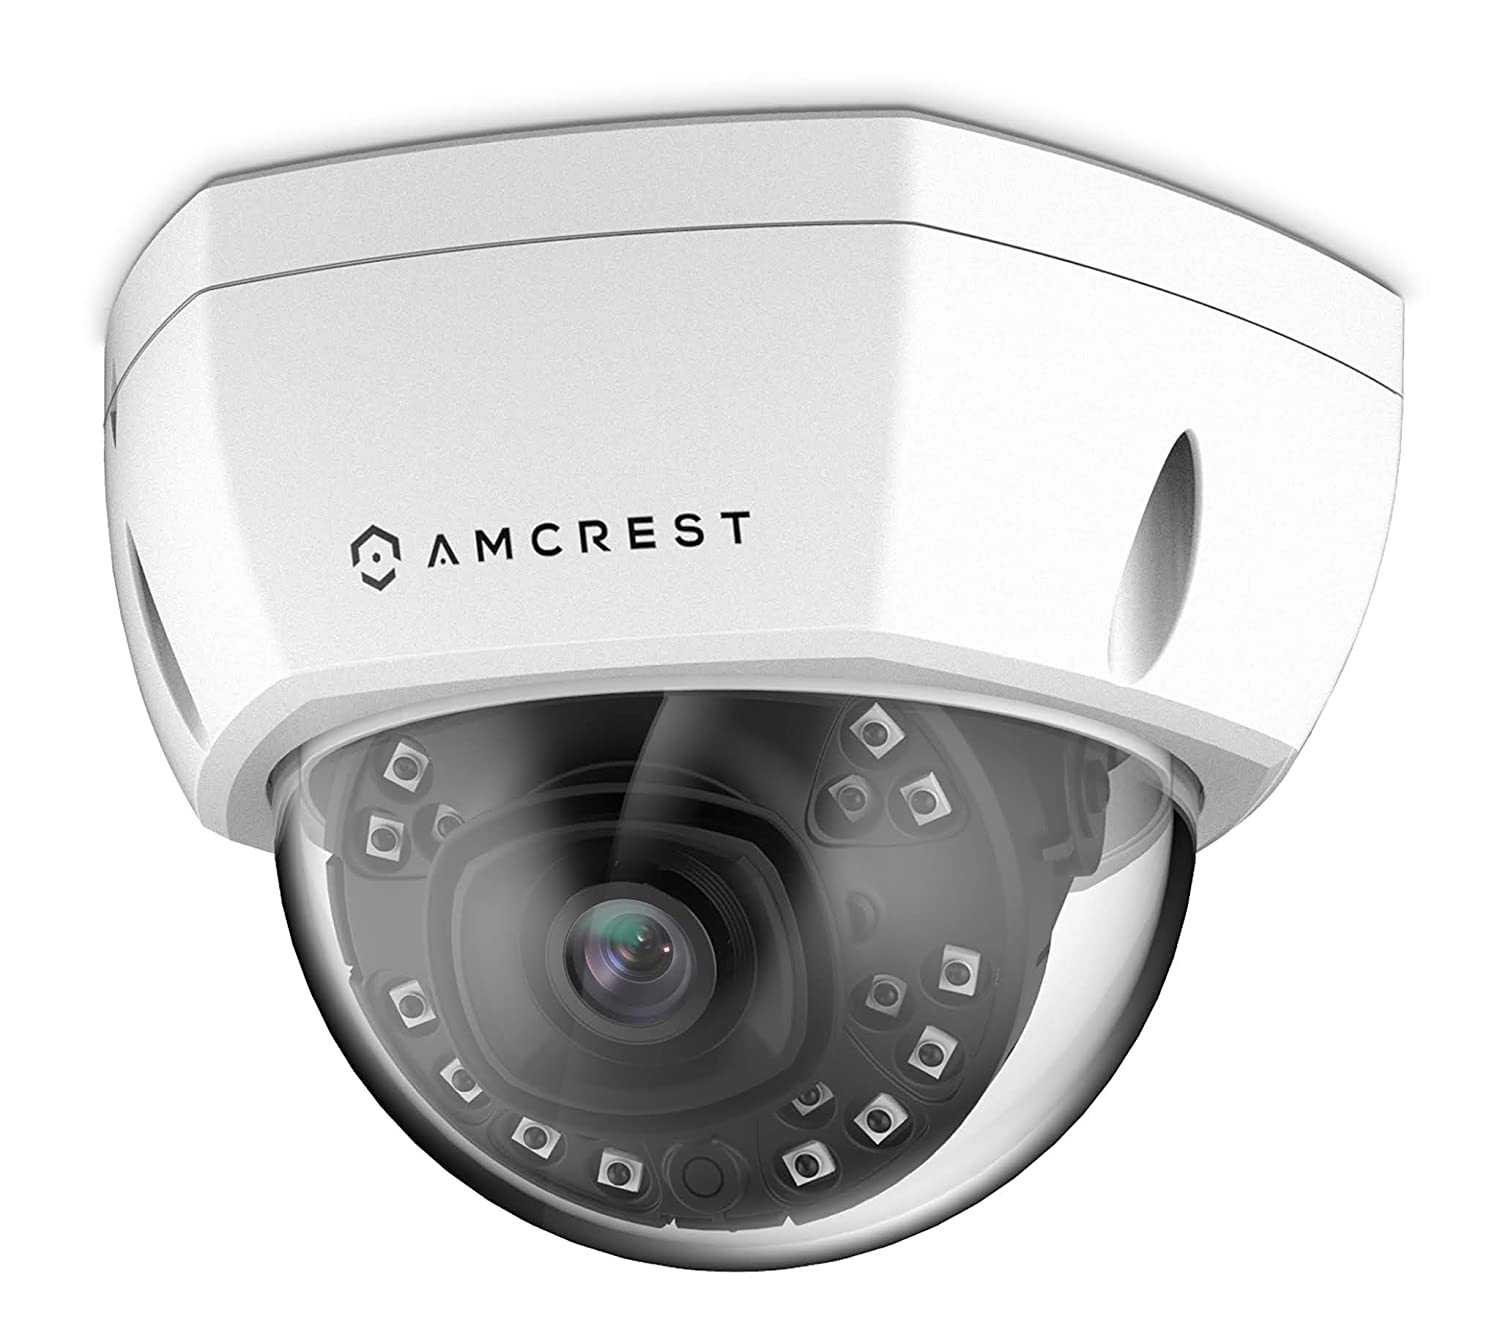 Amcrest UltraHD 4K 8MP Outdoor Security POE IP Camera, 98ft NightVision, 2.8mm Lens, IP67 Weatherproof, IK10 Vandal Resistant Dome, MicroSD Recording, White REP-IP8M-2493EW Renewed